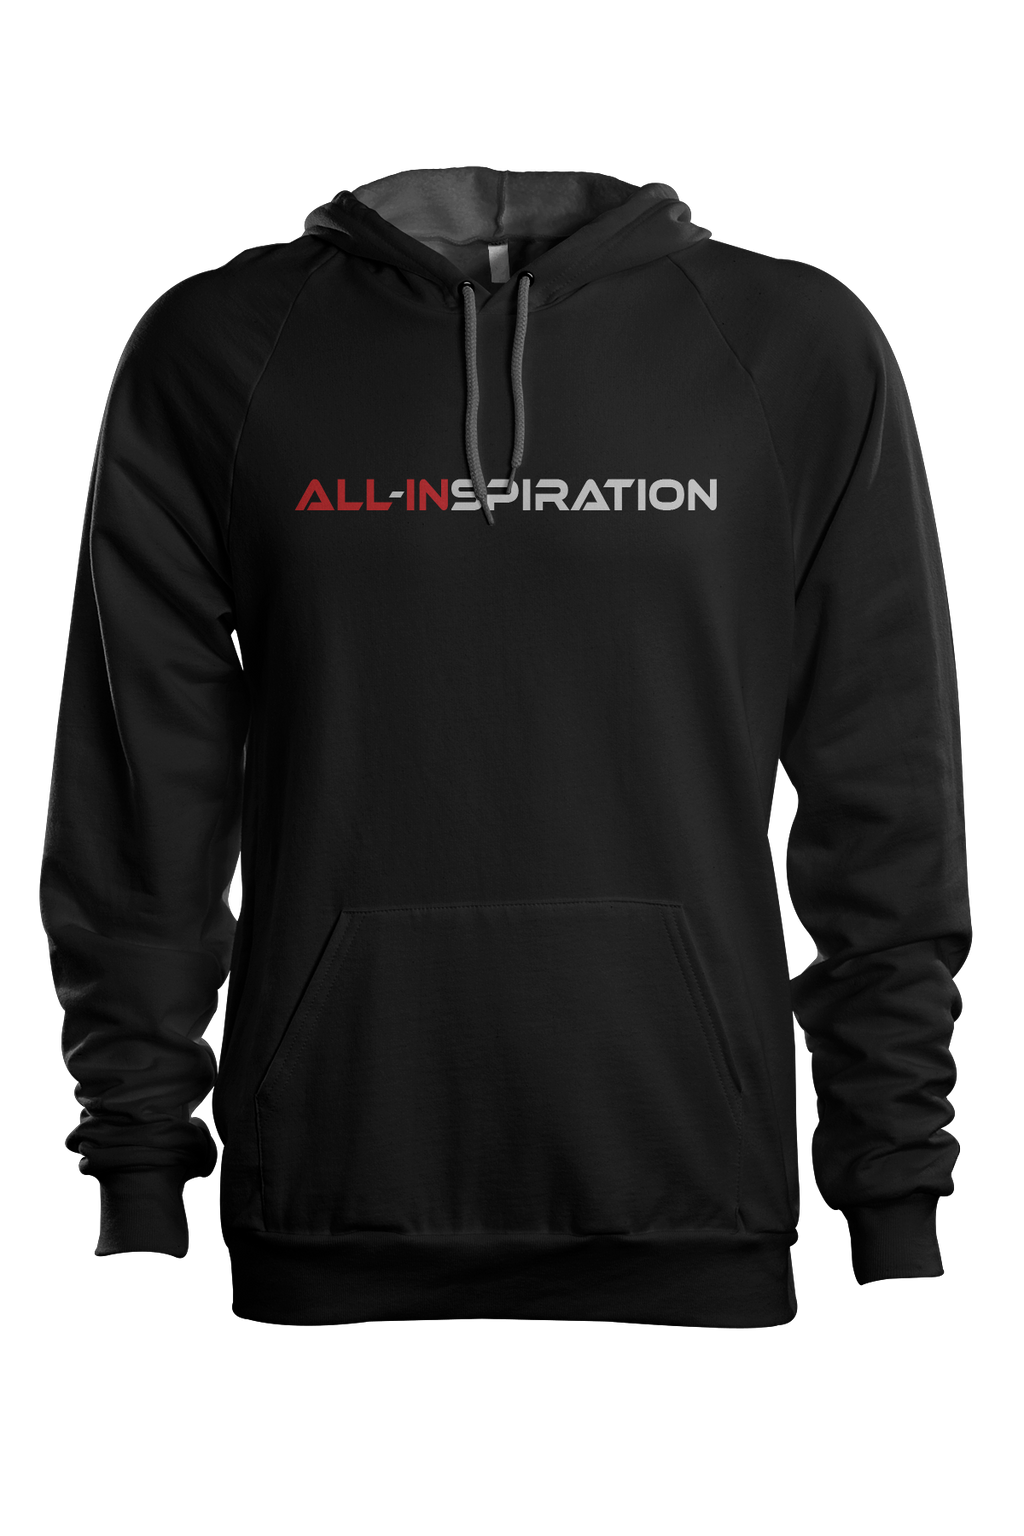 All-Inspiration Text Hoodie